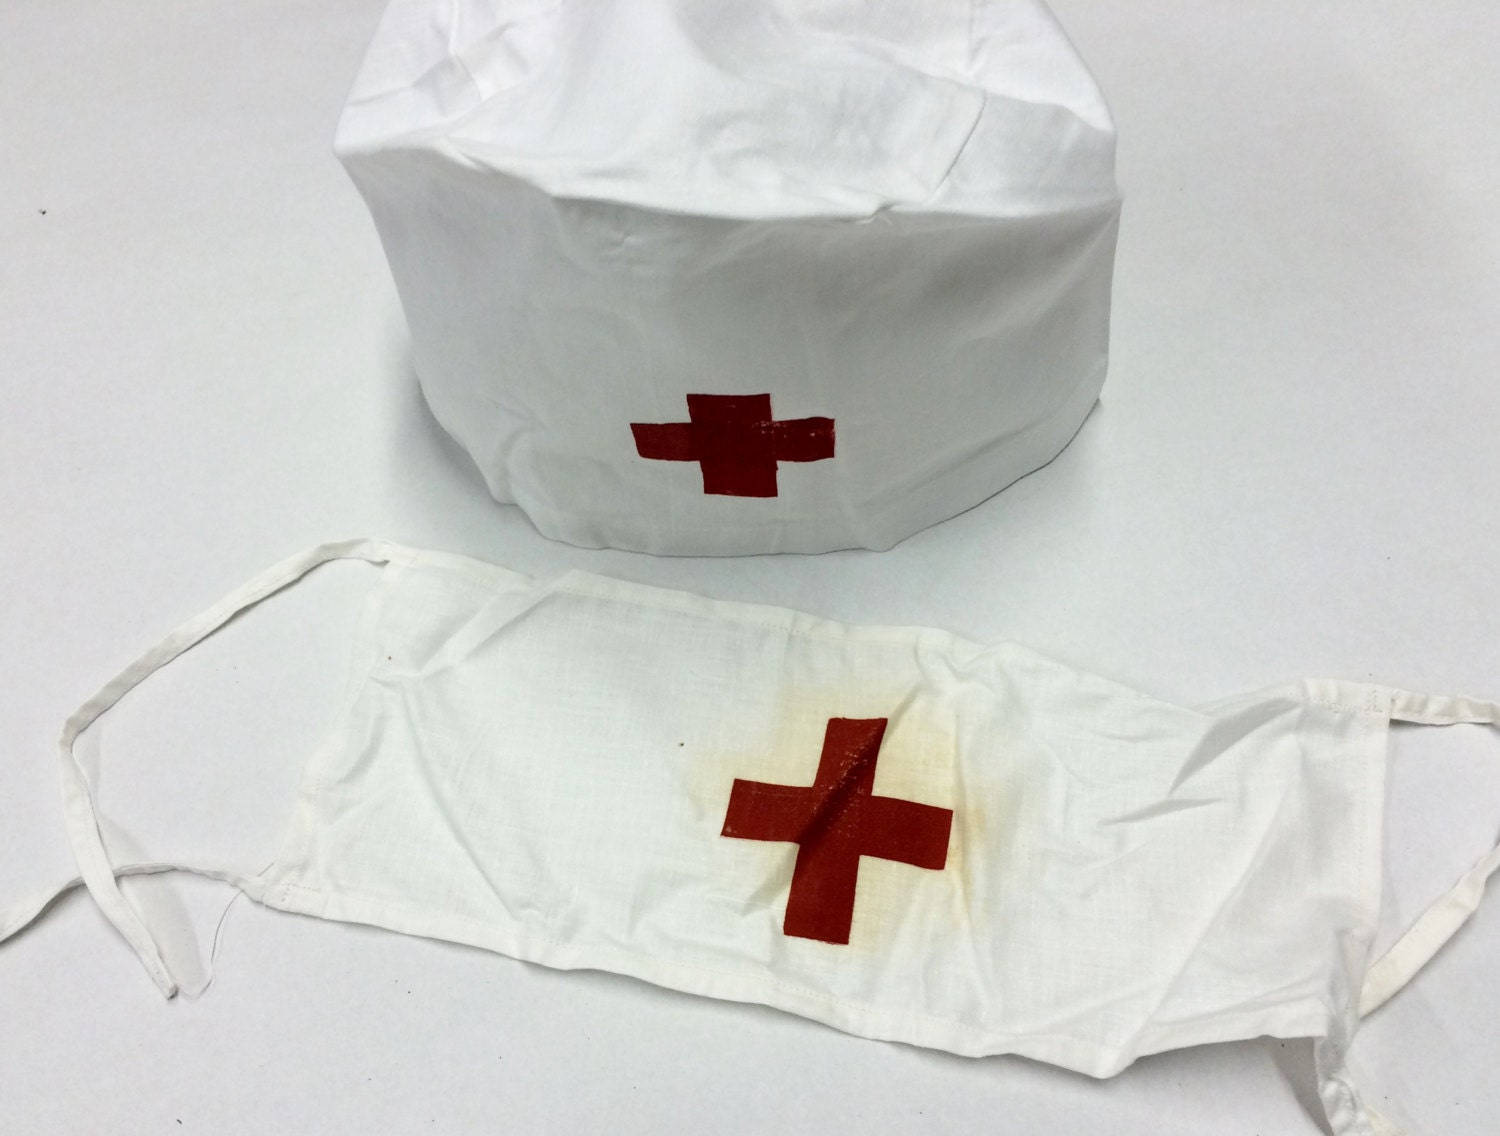 White pinafore apron nurse - Vintage Medical Red Cross Hat Cap With Red Cross Armband Doctor Cap Nurse Surgeon White Cotton Hat Doctor Nurse Costume Wedding Hangover